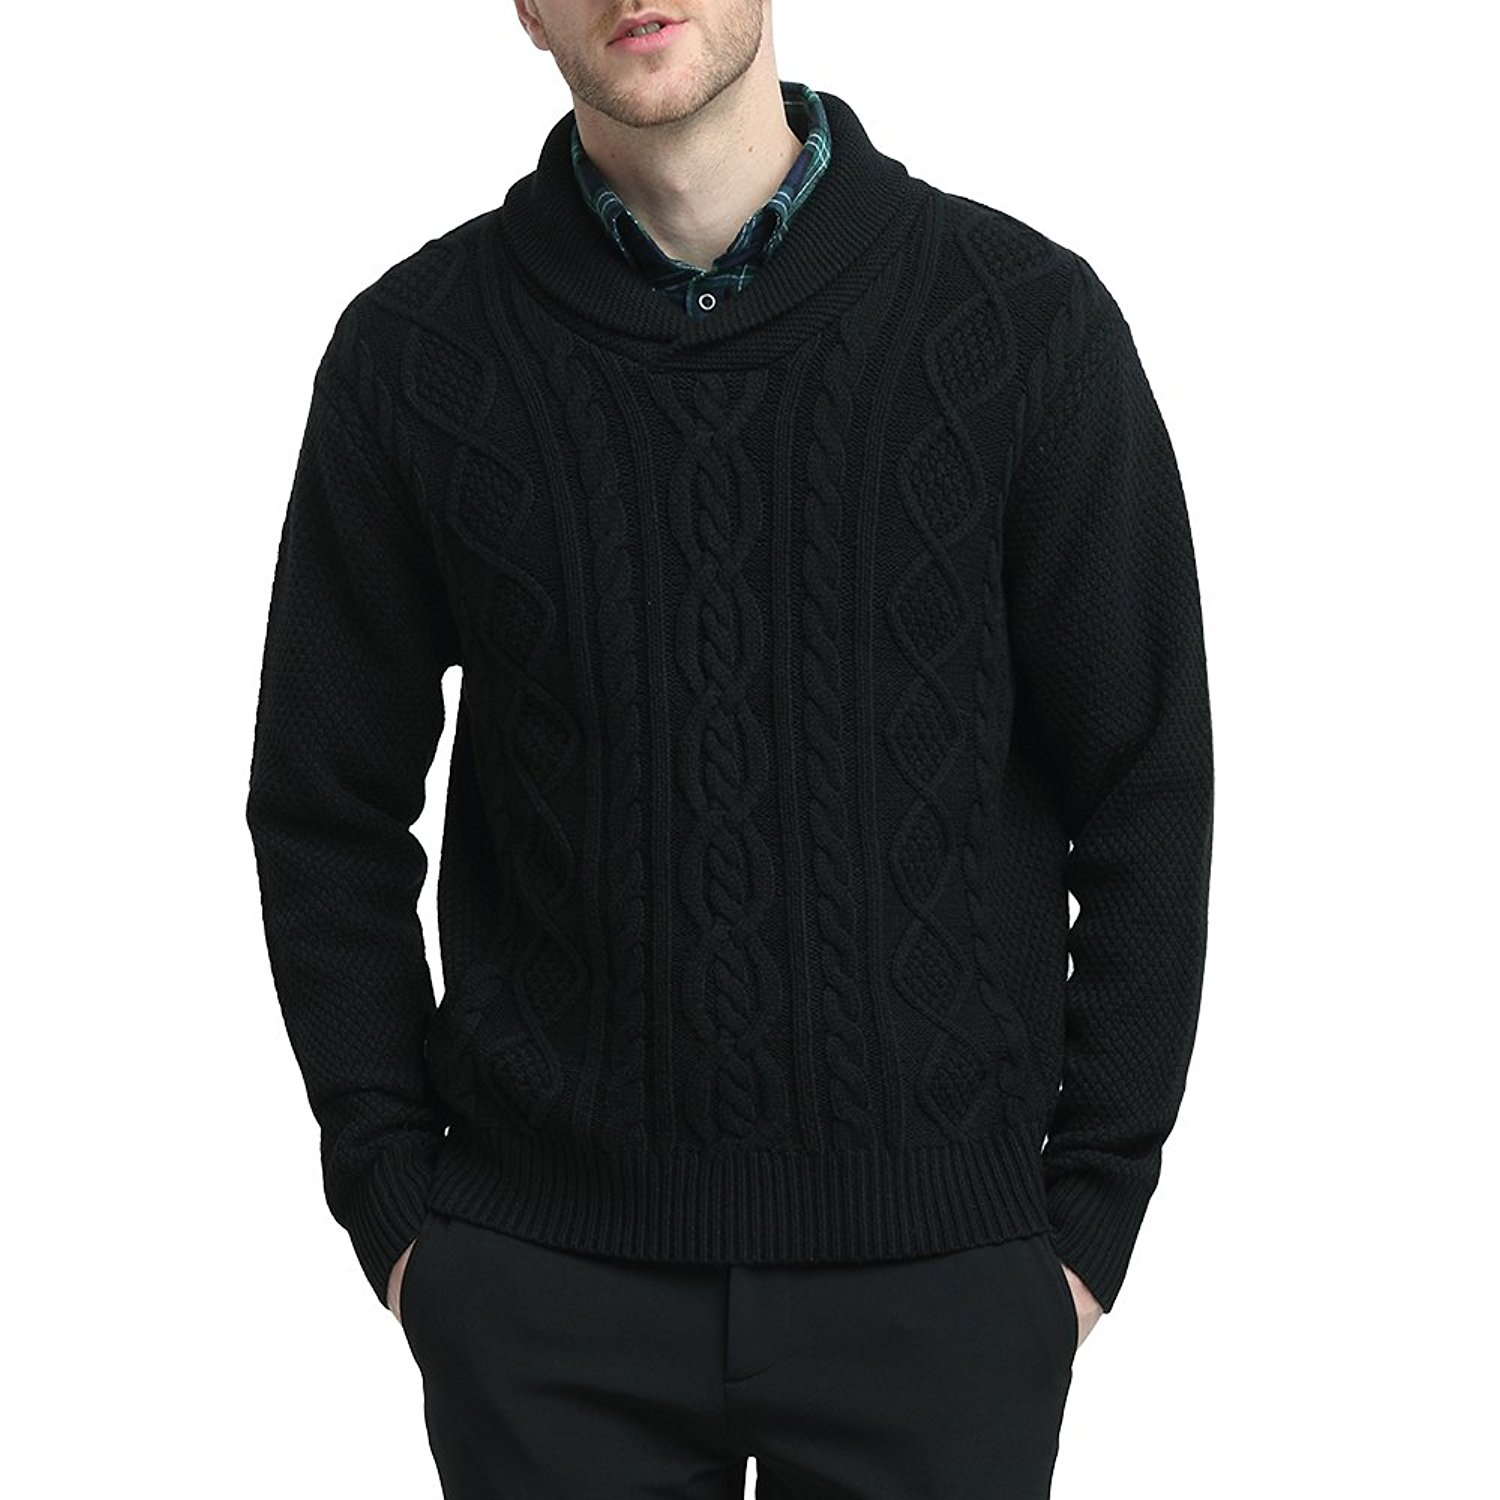 Kallspin Mens Relaxed Fit Solid Shawl Collar Sweater Pullover Cable Fisherman